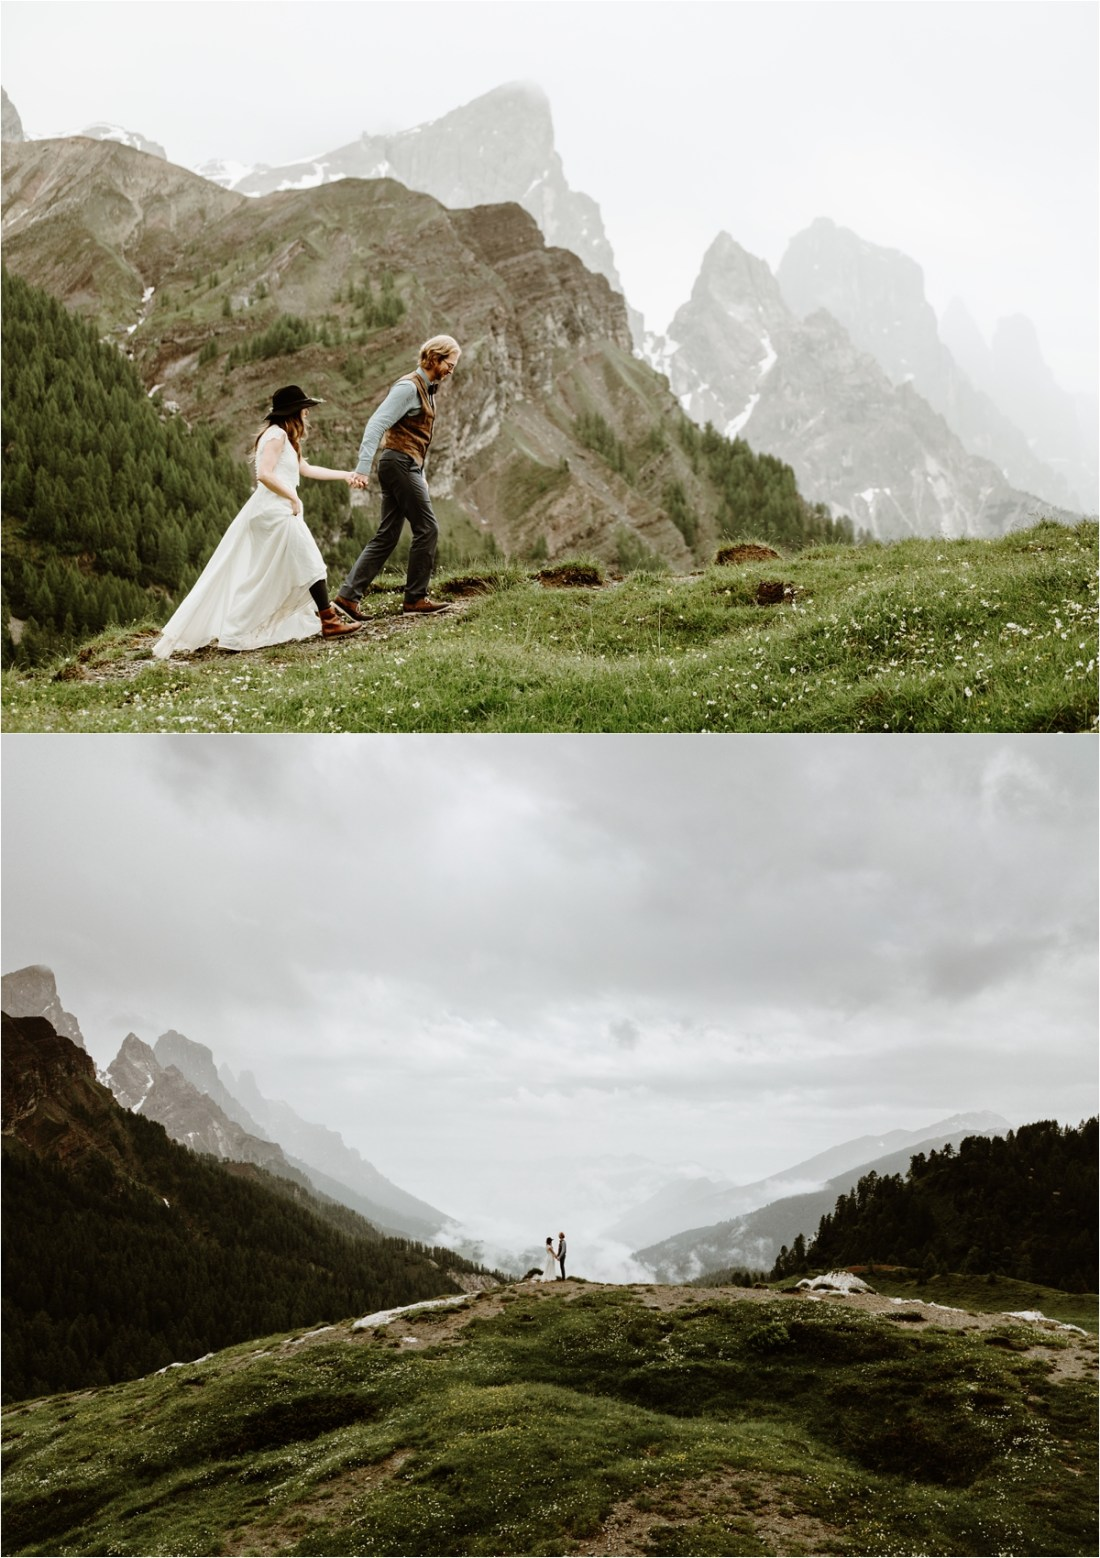 Adam & Michelle hike up to the location where they want to have their elopement vows ceremony. Photography by Wild Connections Photography